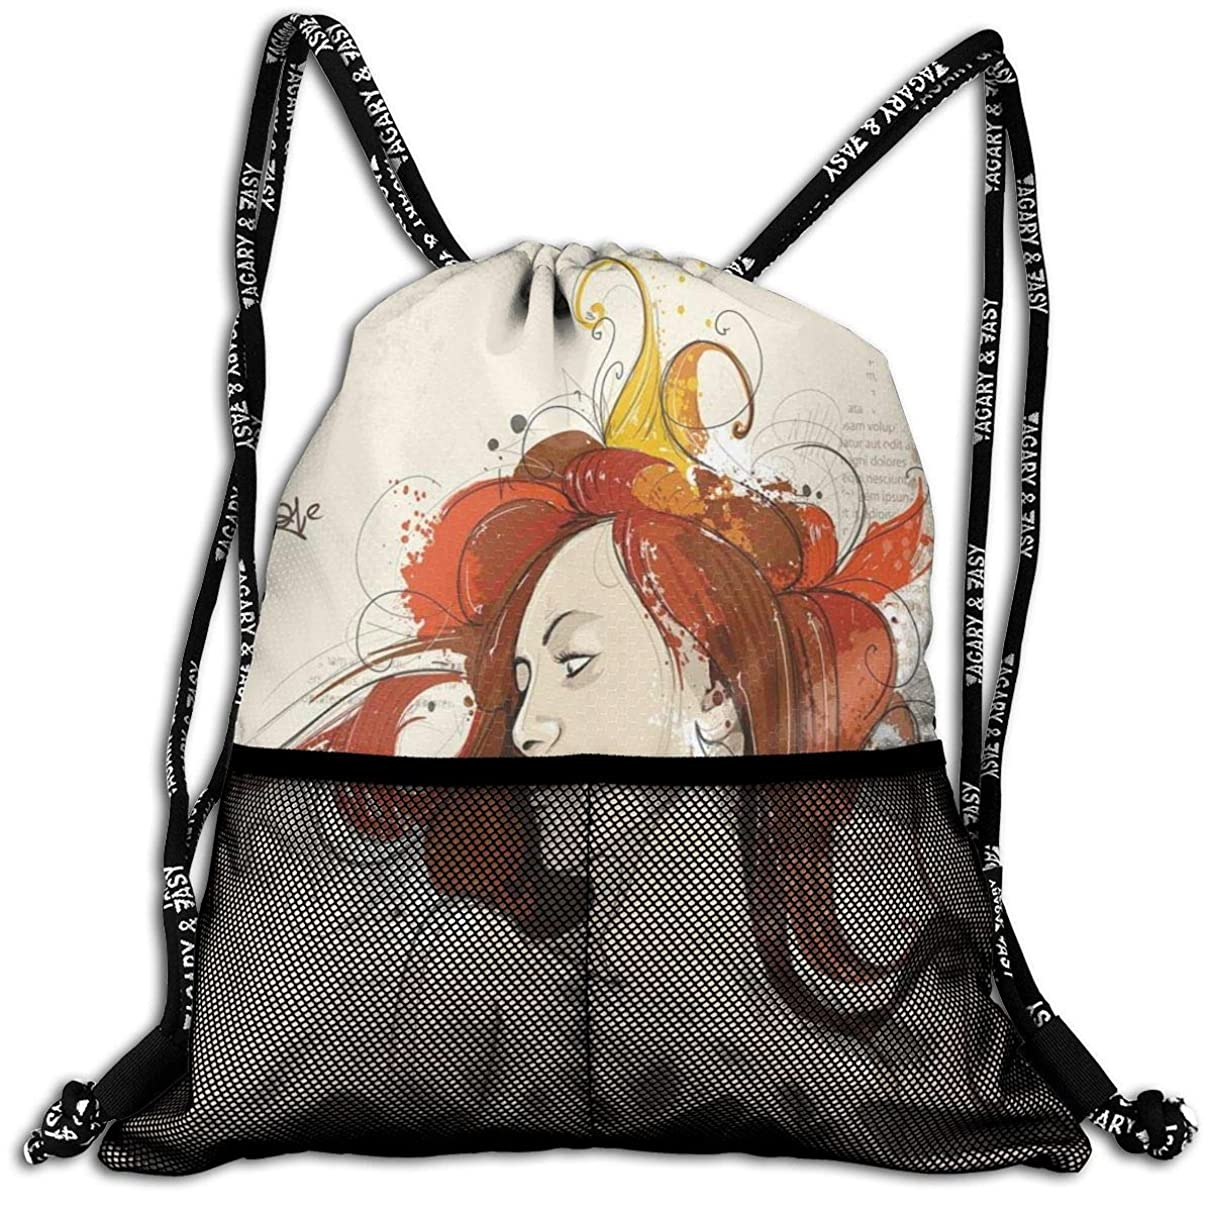 Drawstring Backpacks Bags,Muse Woman Portrait In Grunge Style Elegance Hand Drawn Mystic Beauty Picture,5 Liter Capacity,Adjustable